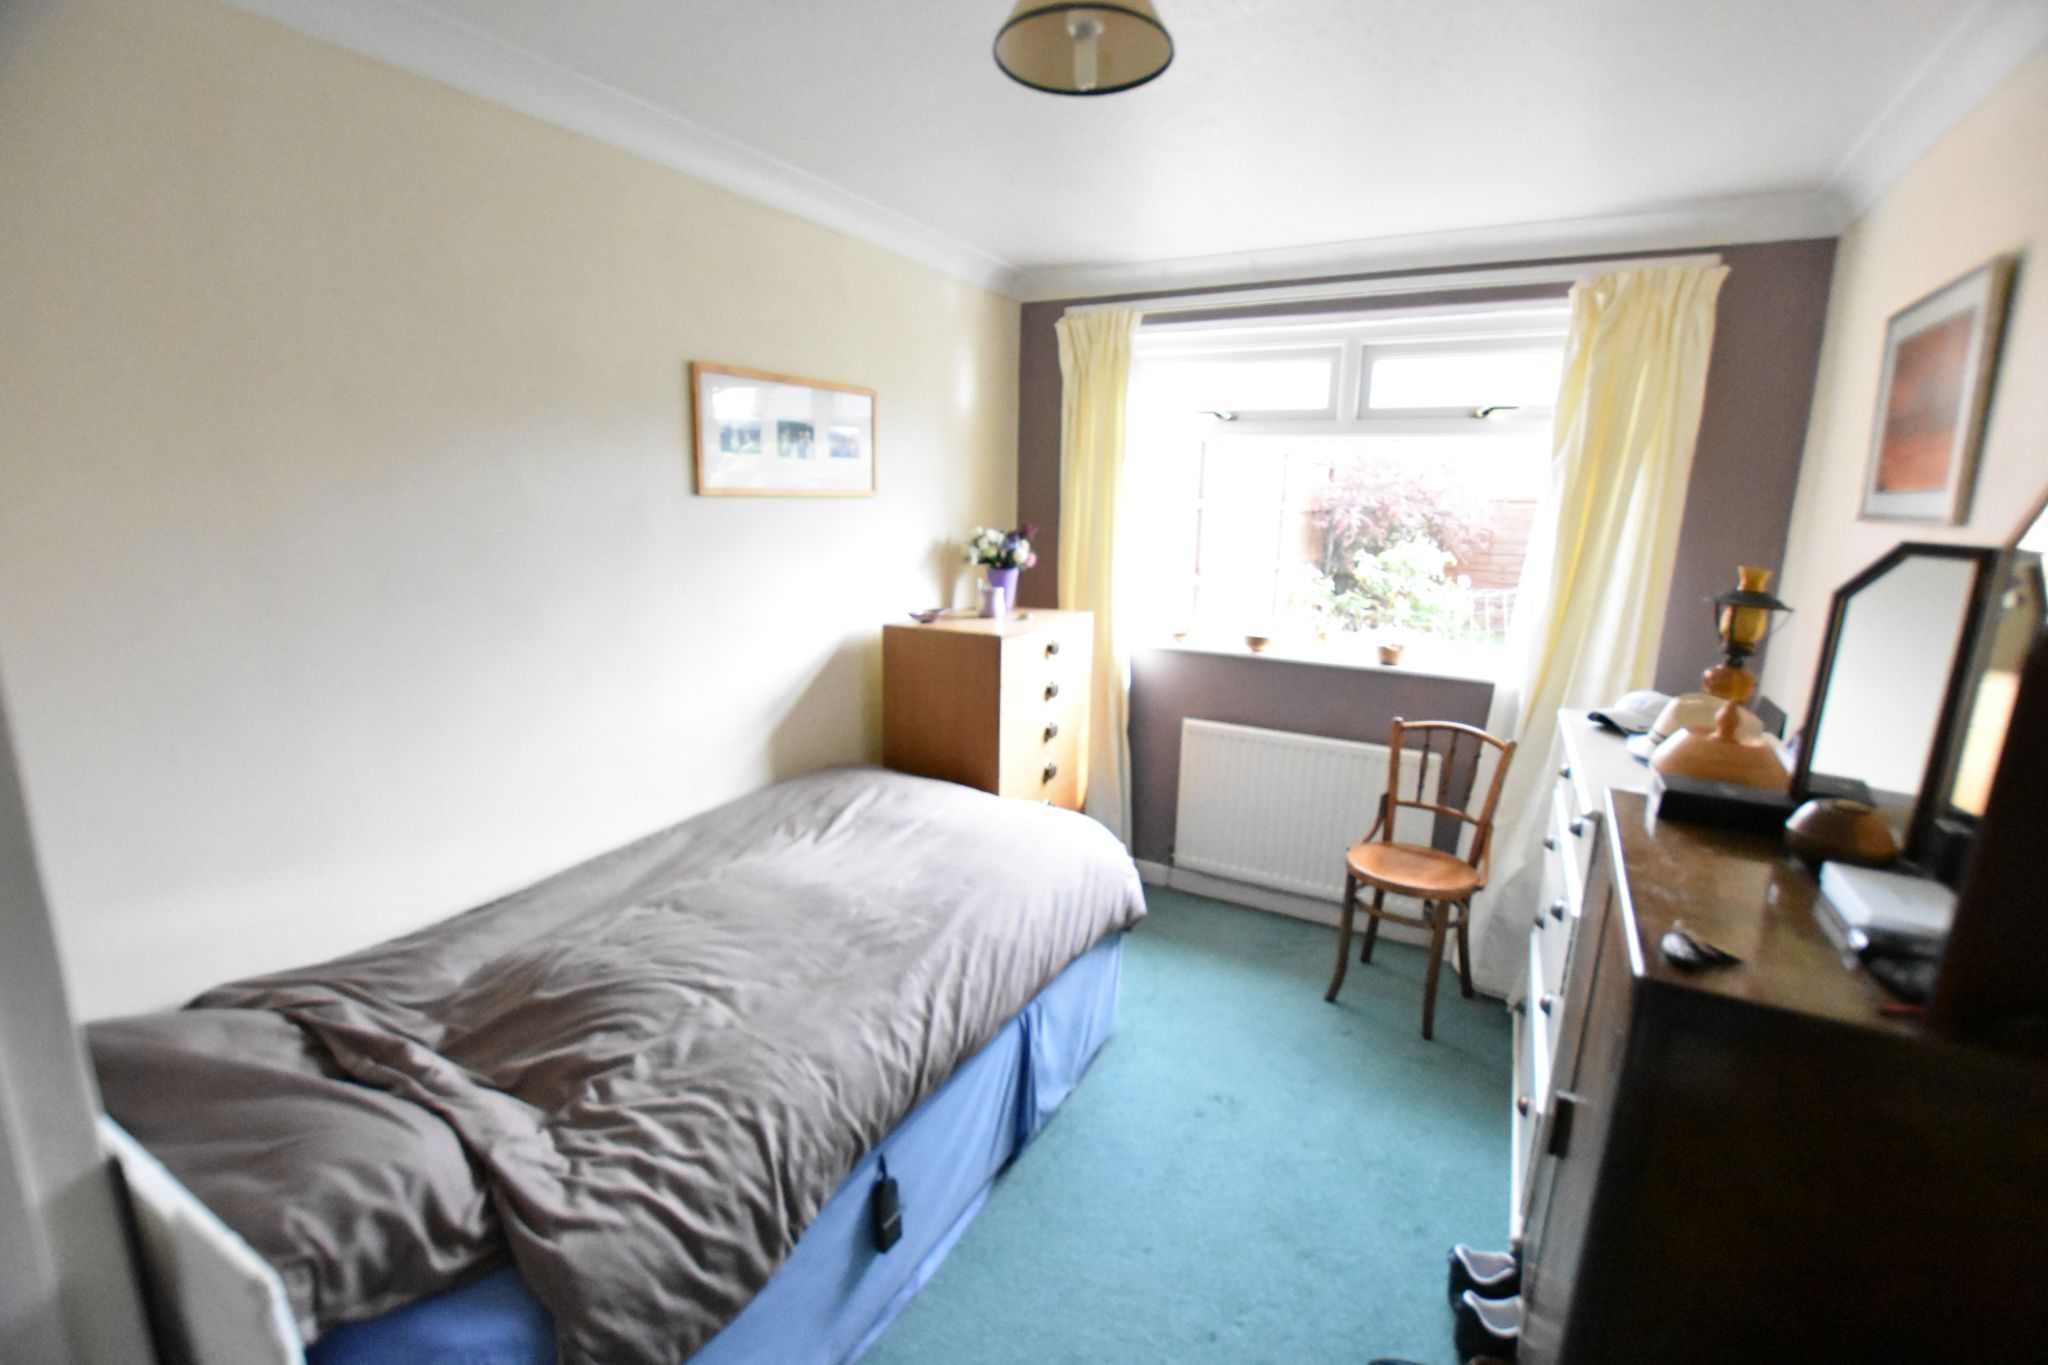 Image 1 of 3 of BEDROOM 1, on Accommodation Comprising for